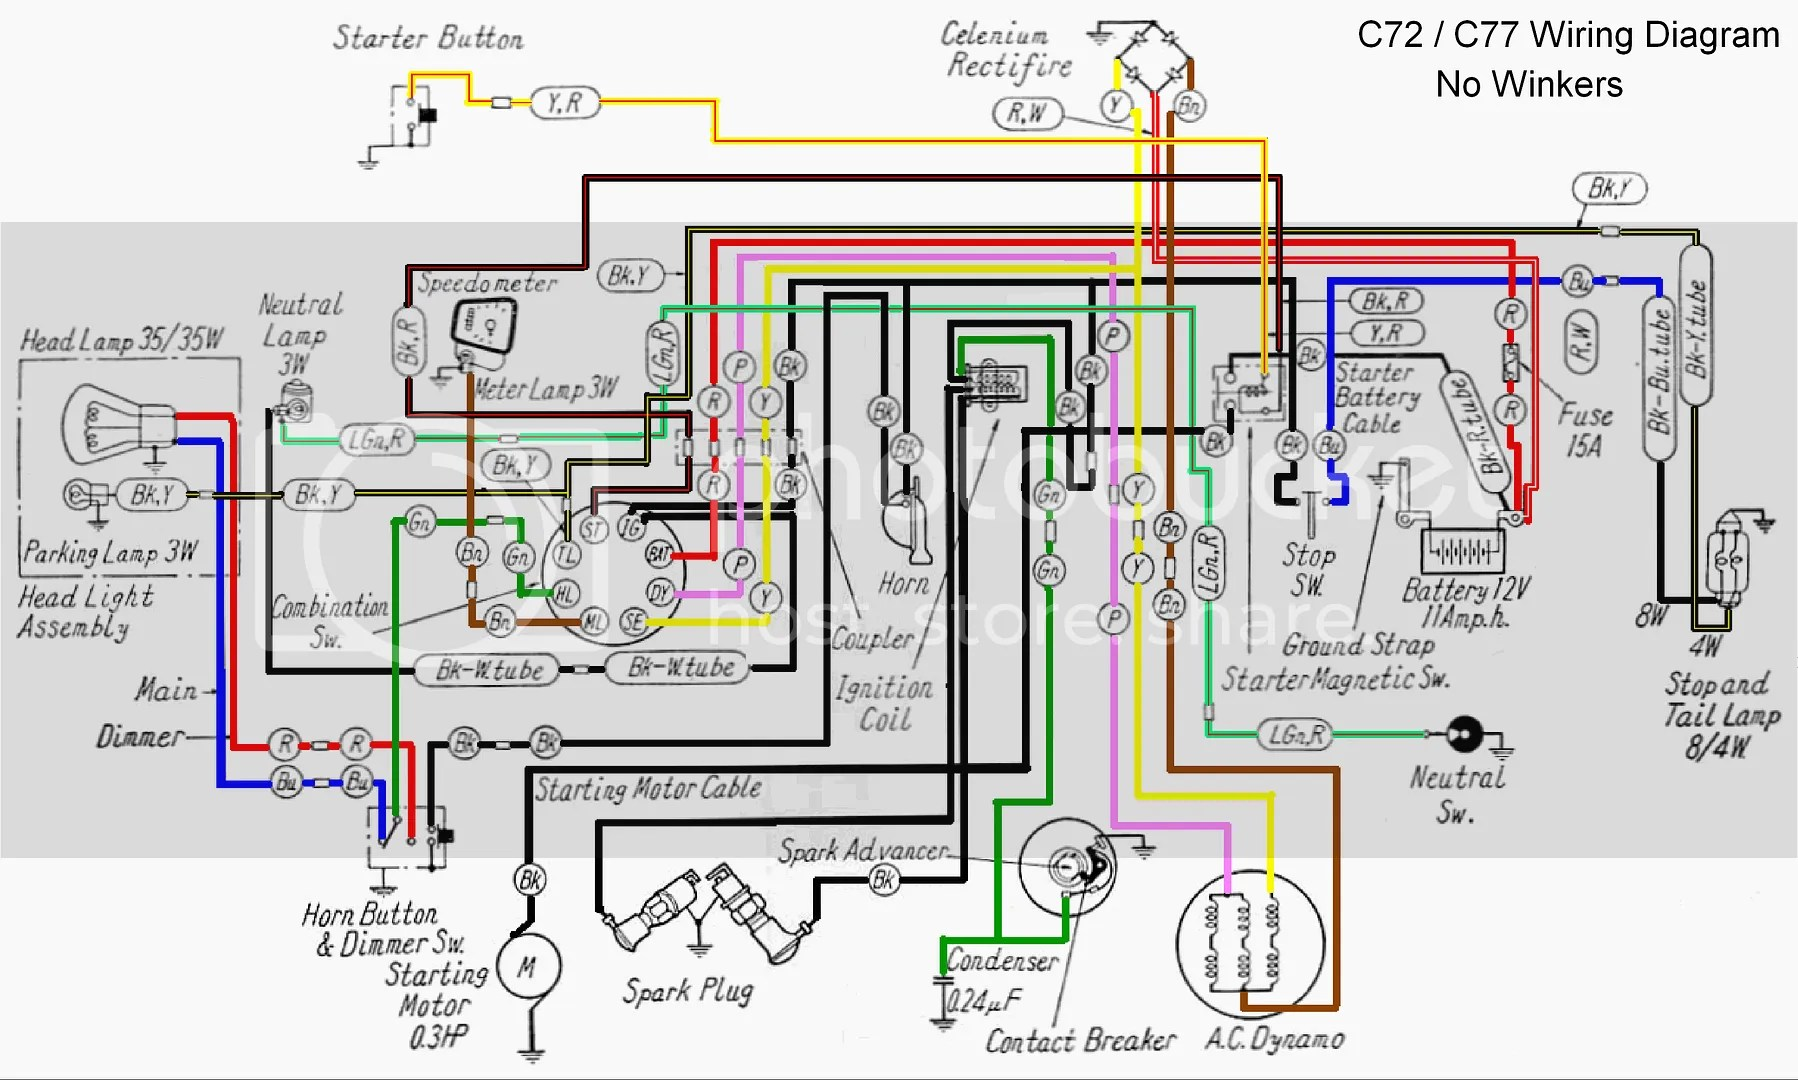 small resolution of ca77 wiring diagram wiring diagram schemes gl1100 wiring diagram honda cl77 wiring diagram